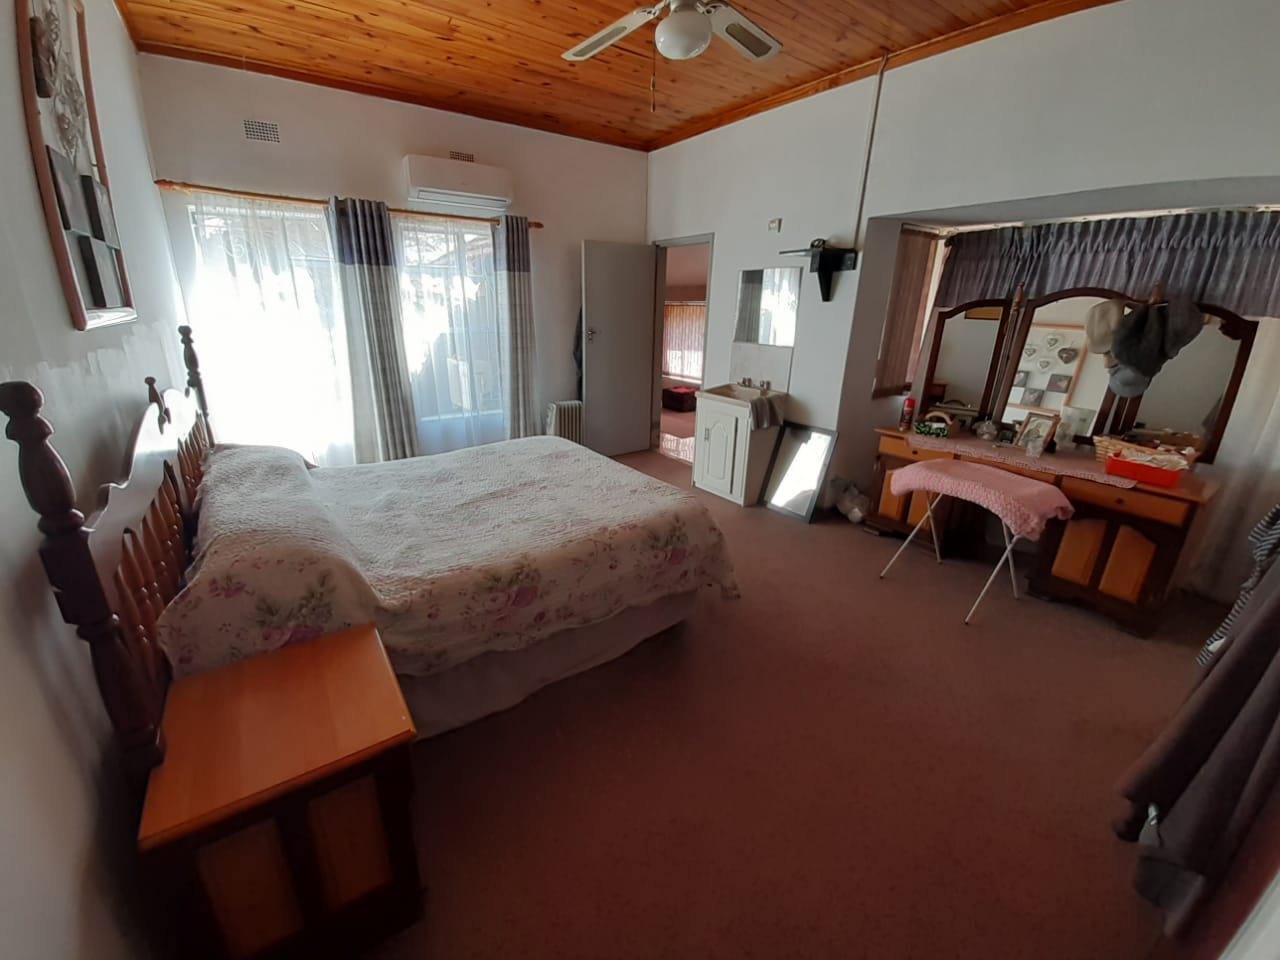 House in Parys - WhatsApp Image 2021-07-15 at 14.03.58.jpeg